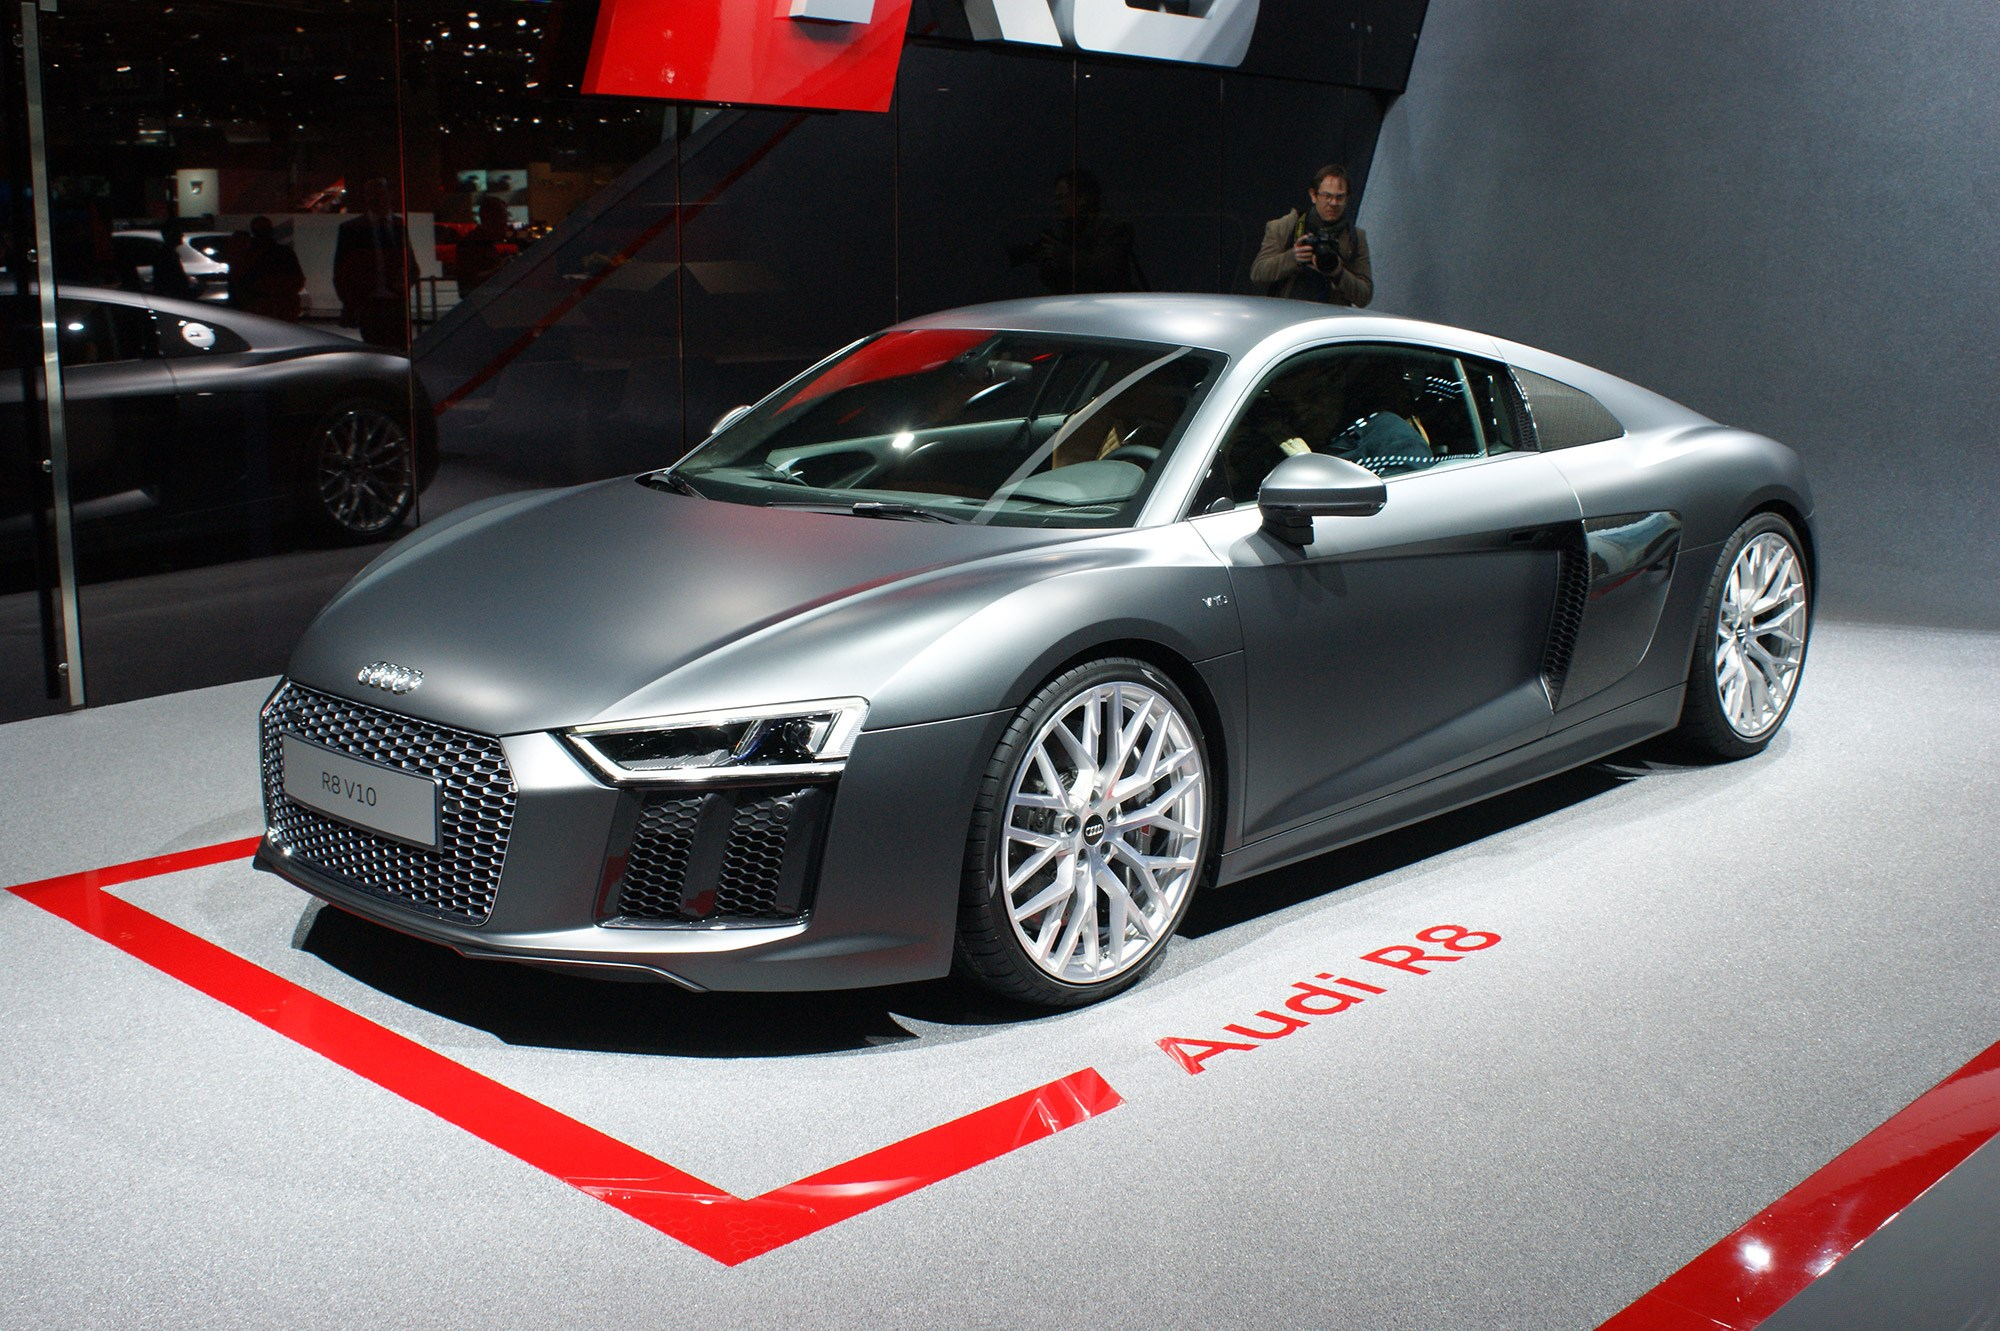 The New Audi R8 Made Its World Debut At Geneva Show